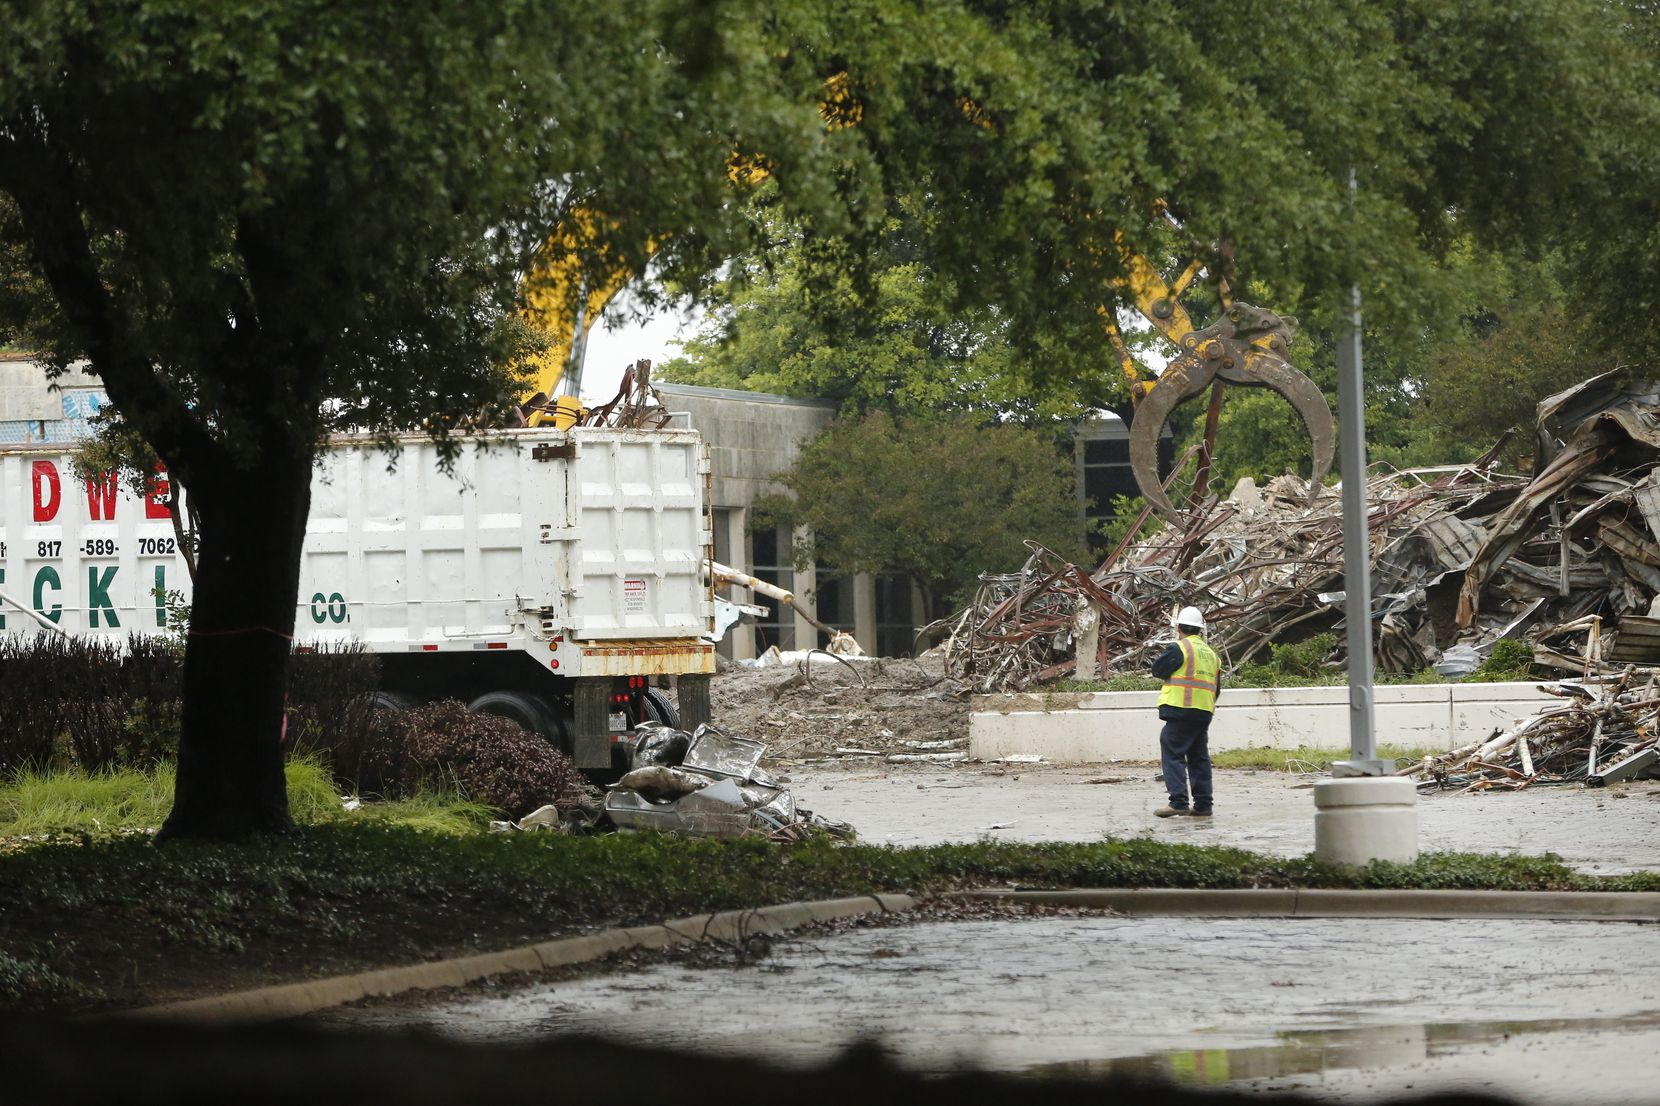 Work crews demolish the former headquarters of the Dallas Cowboys at Valley Ranch in Irving.